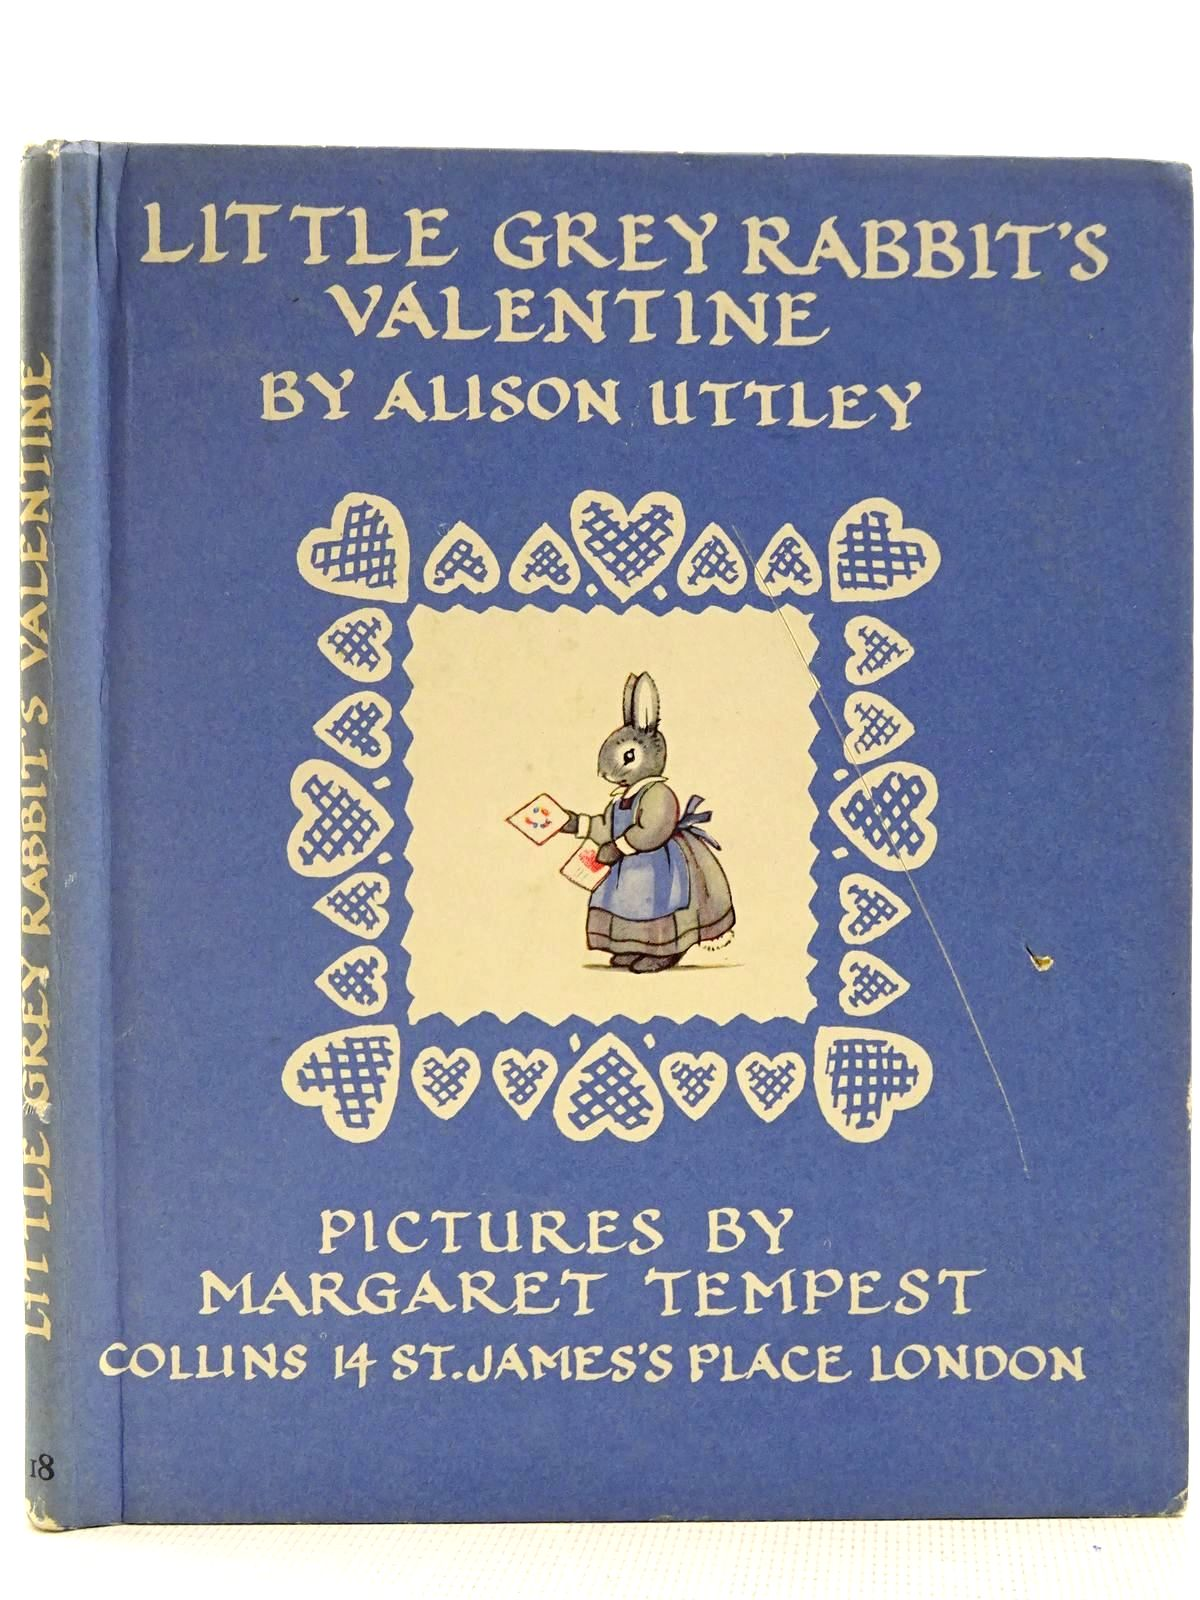 Photo of LITTLE GREY RABBIT'S VALENTINE written by Uttley, Alison illustrated by Tempest, Margaret published by Collins (STOCK CODE: 2128474)  for sale by Stella & Rose's Books